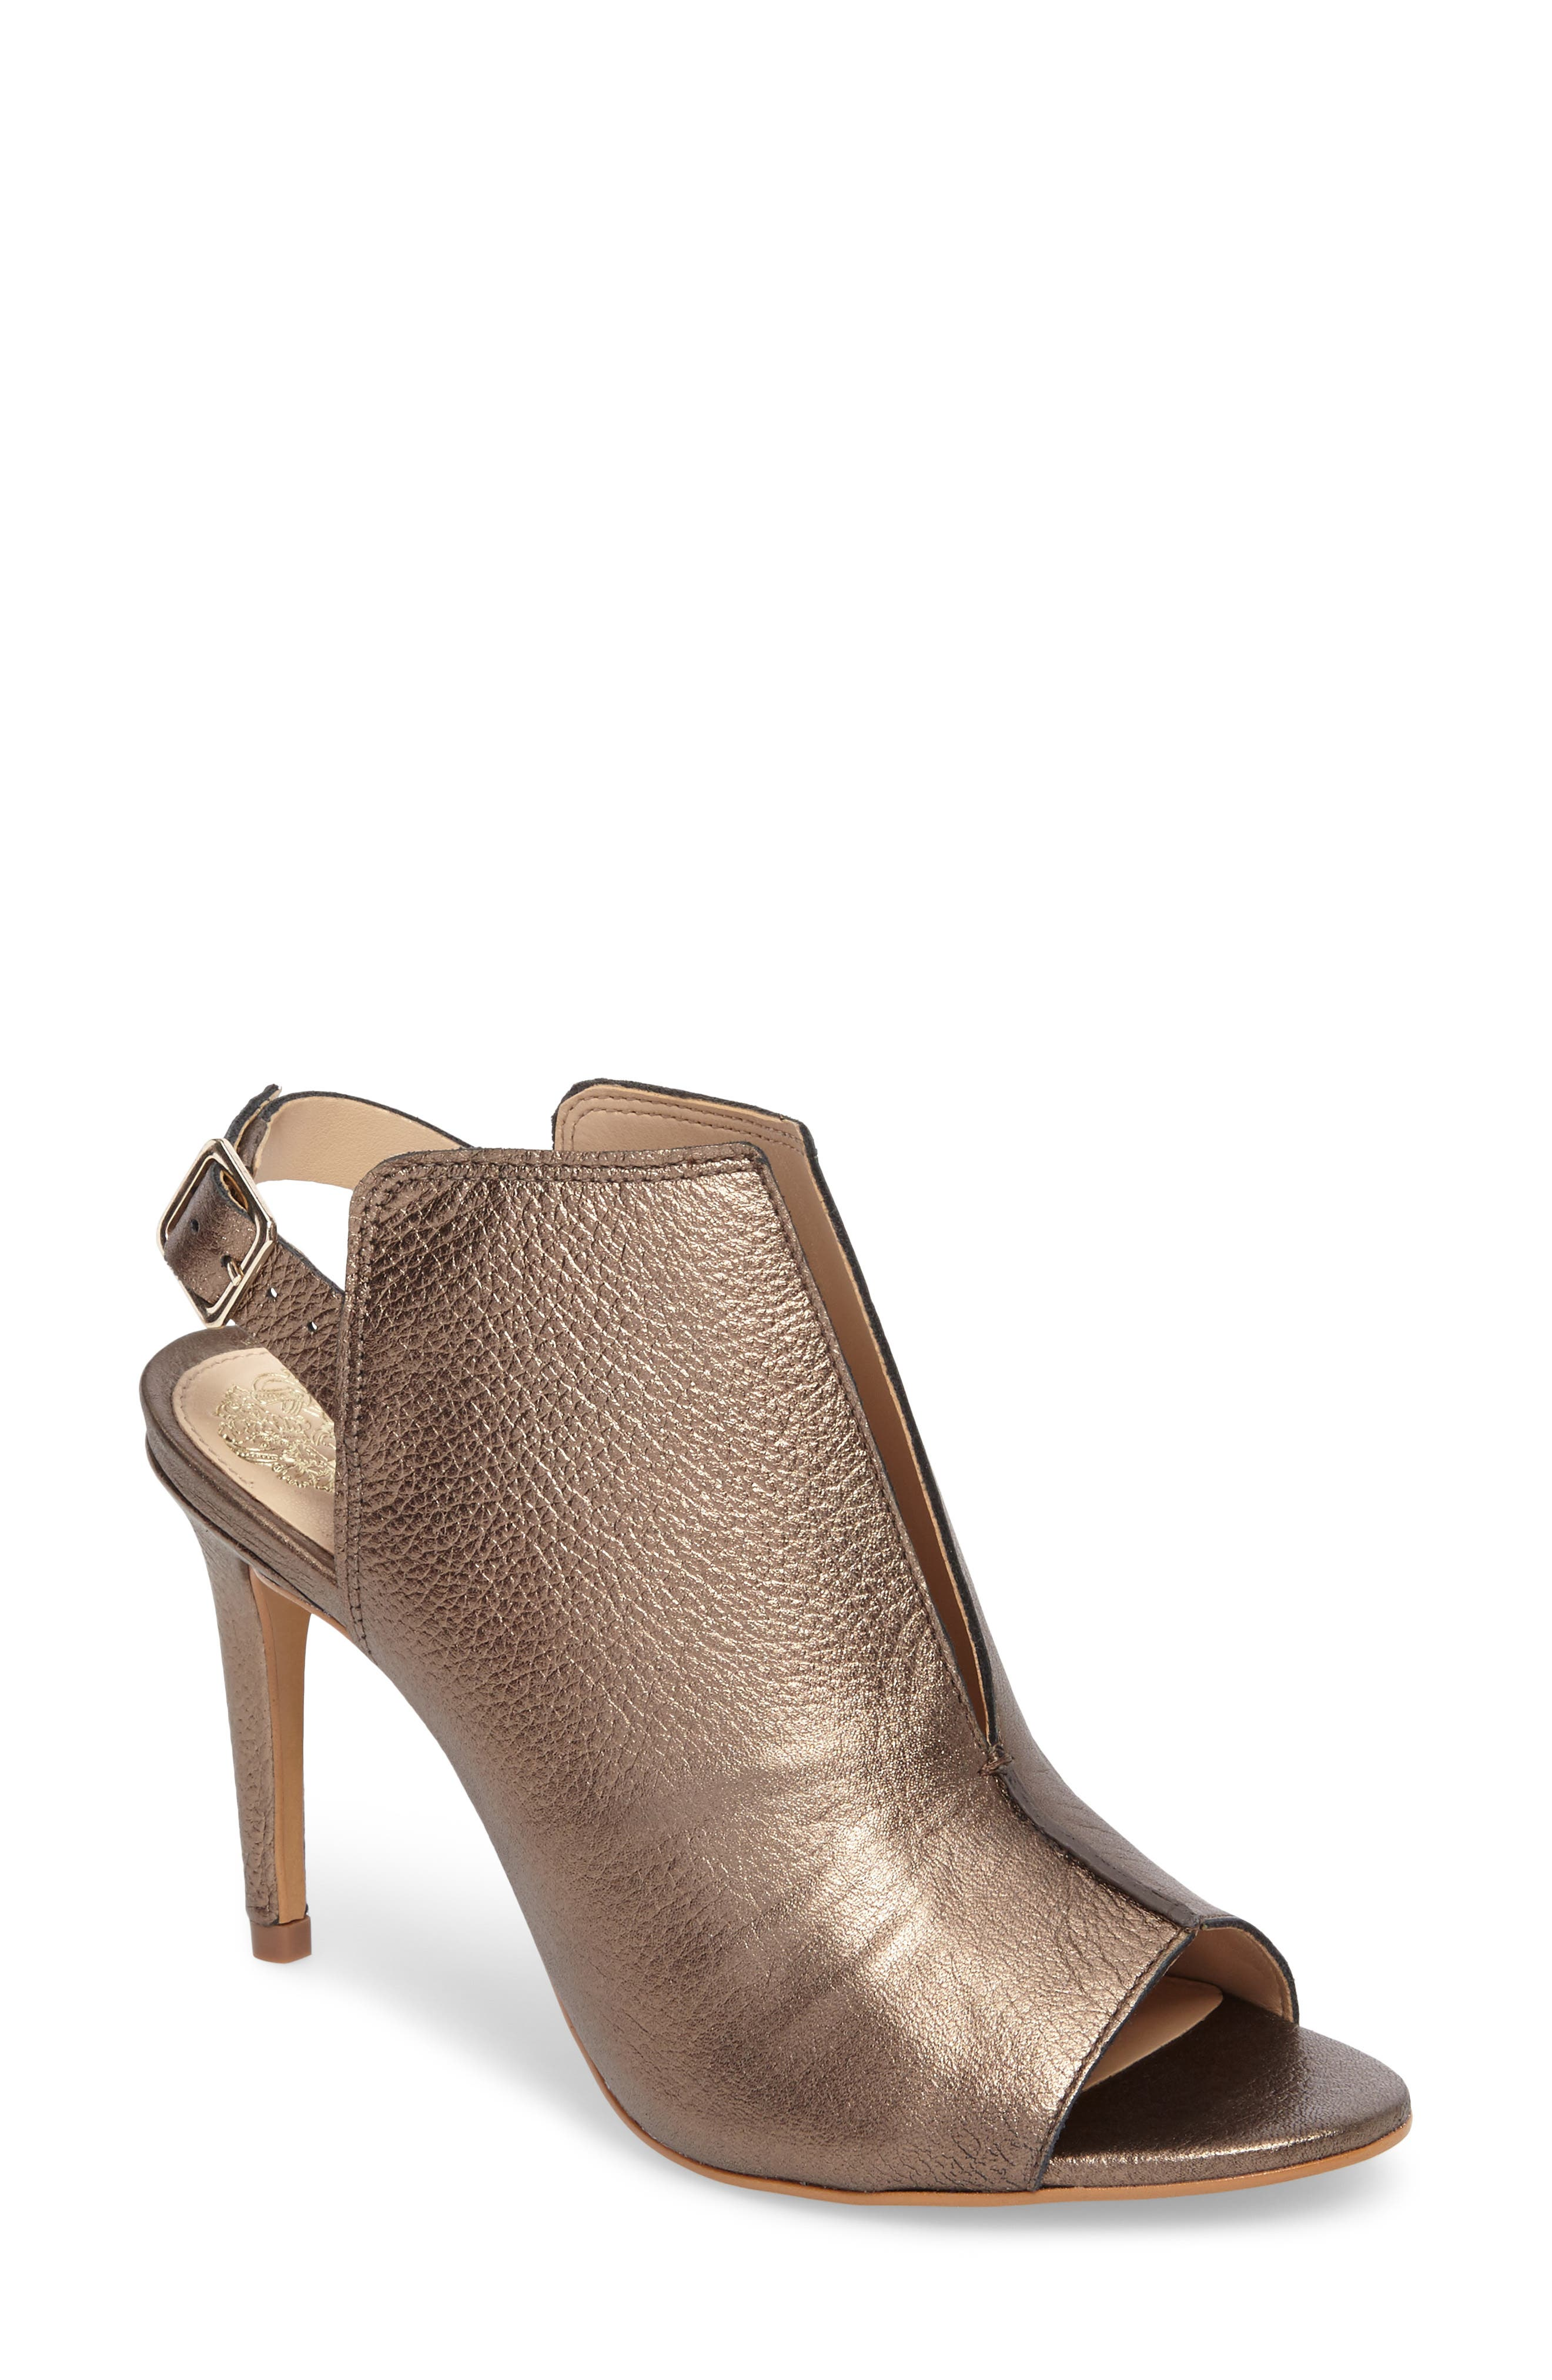 Vince Camuto Shoes Review